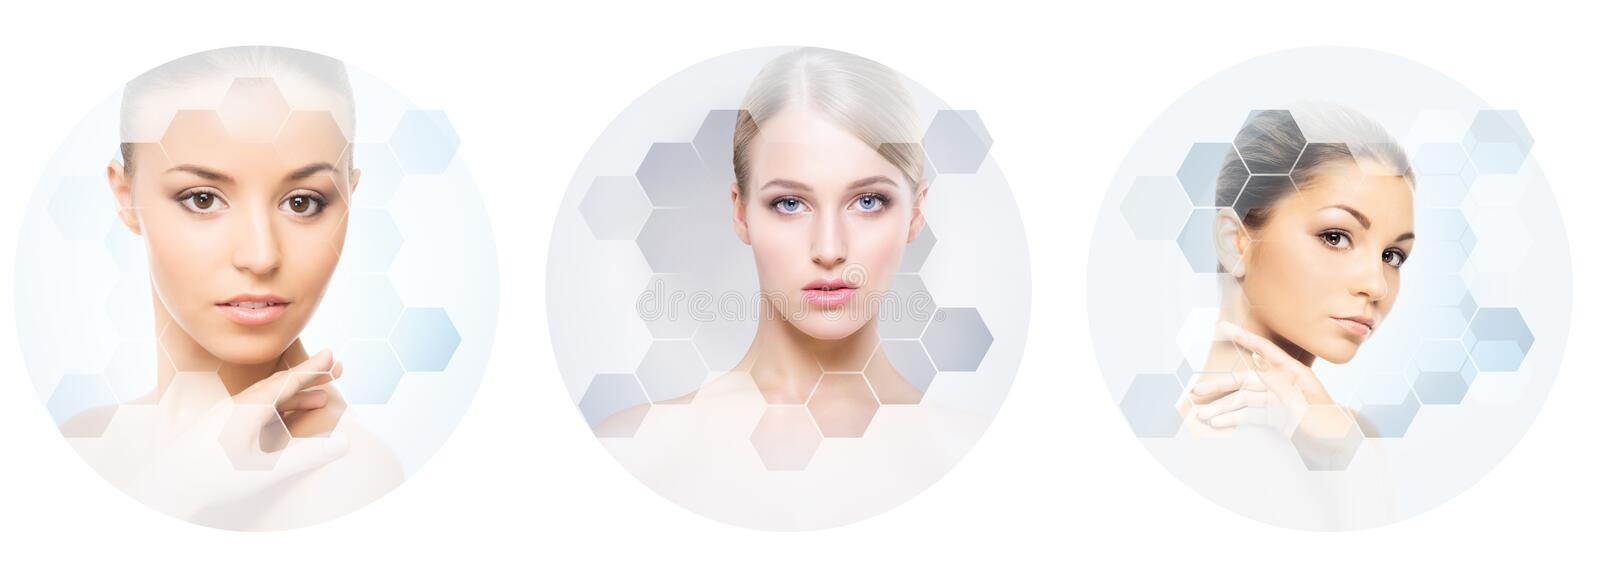 Human face in a collage. Young and healthy woman in plastic surgery, medicine, spa and face lifting concept collection. stock images